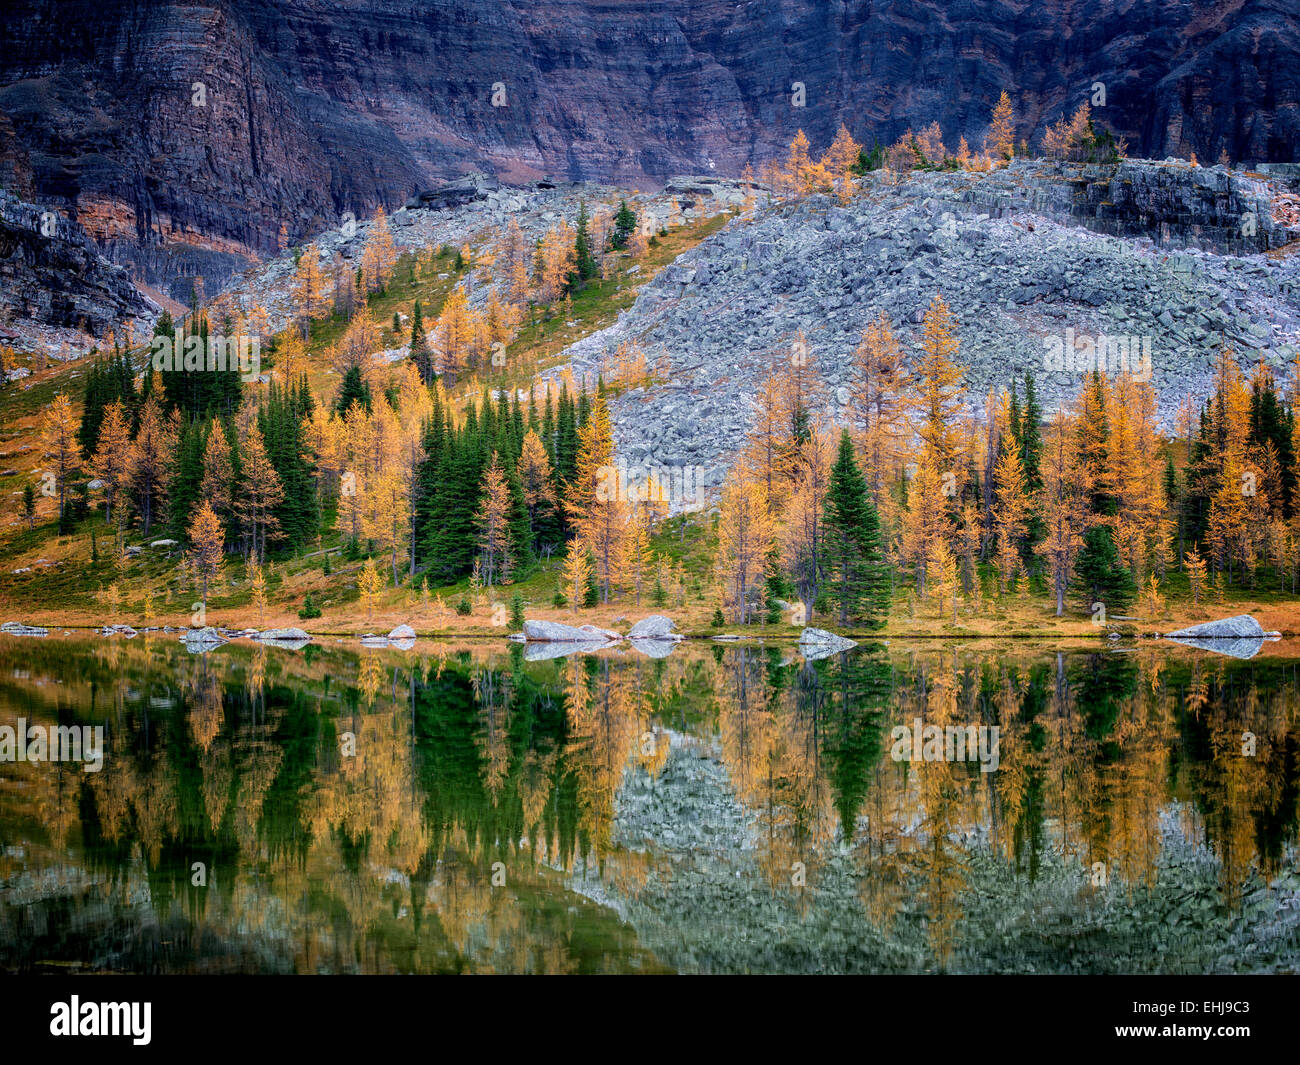 lake reflexion l rche im herbst farbe am moor see und die berge yoho national park opabin. Black Bedroom Furniture Sets. Home Design Ideas